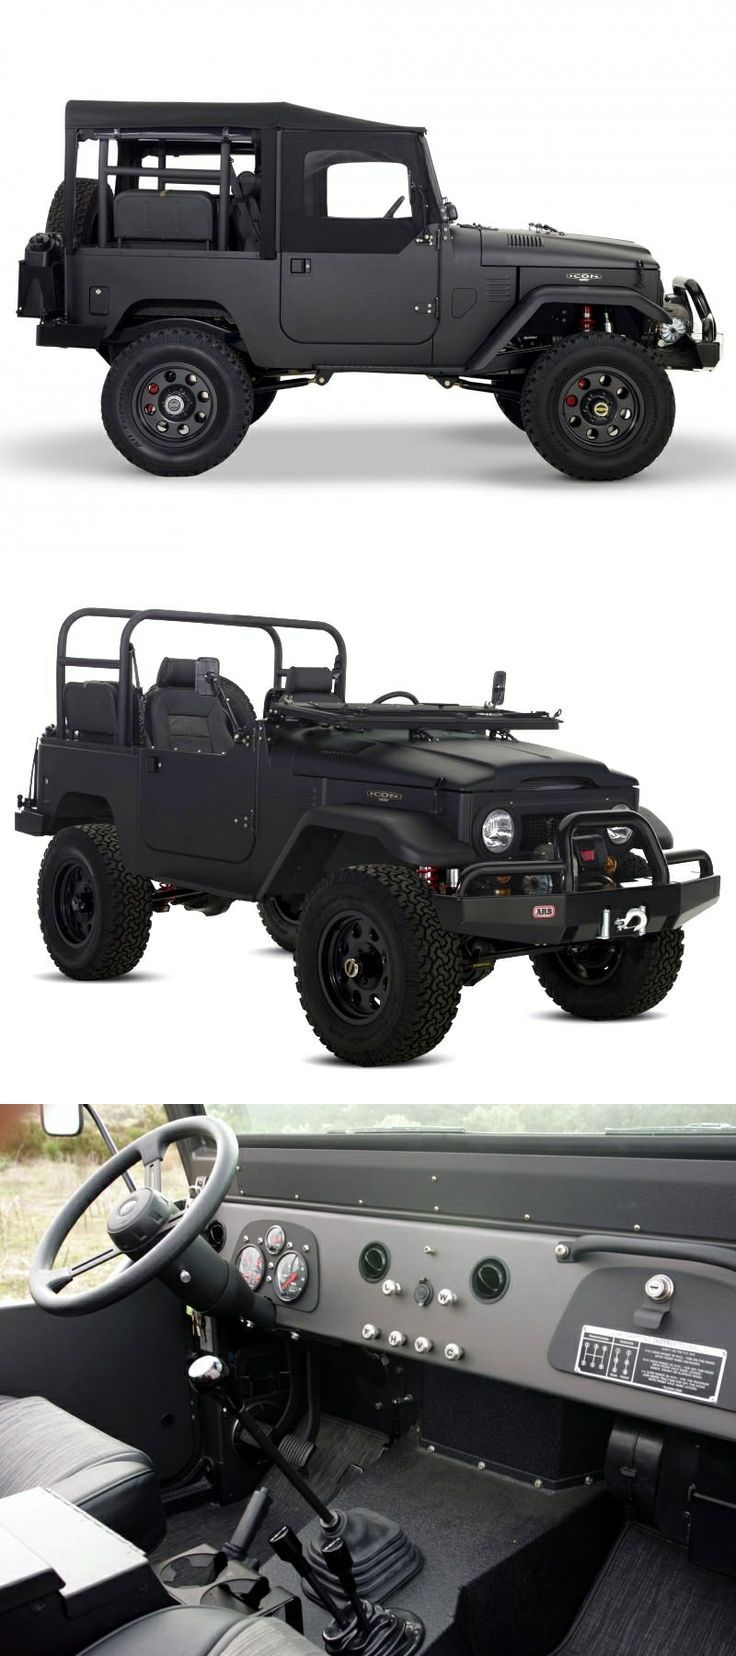 351 Best 4 By Force Images On Pinterest Toyota Land Cruiser Cars 1973 Wheelbase Width Youre Going To Need This And The Outdoor Survival Crate Check It Out Here